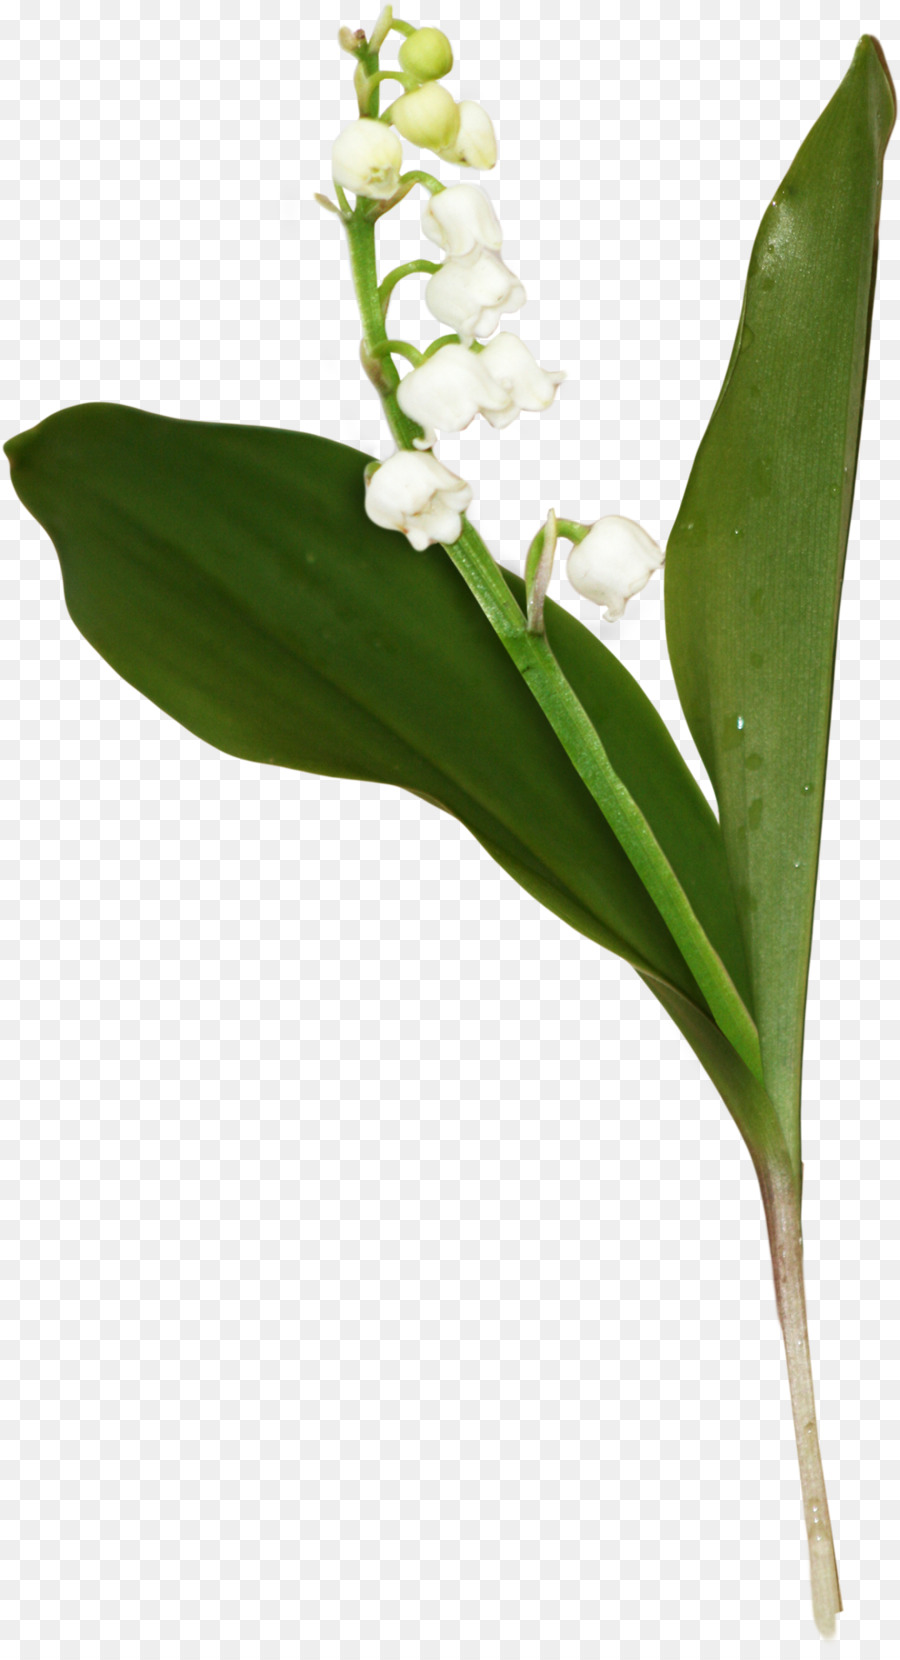 Flower floral design clip art lily of the valley png download flower floral design clip art lily of the valley izmirmasajfo